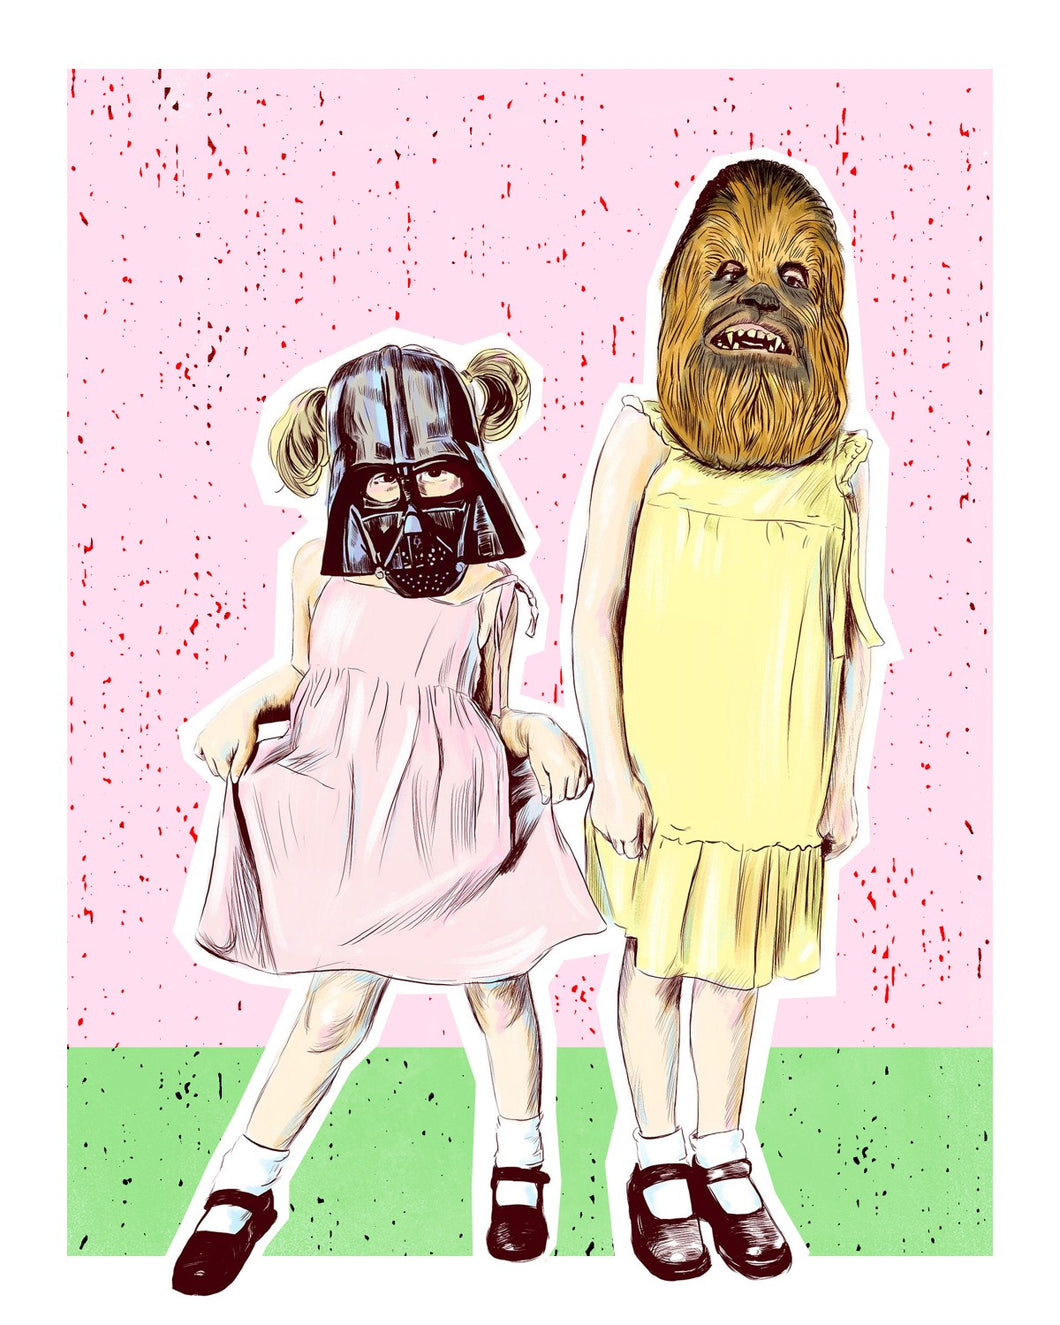 vader and chewie star wars print